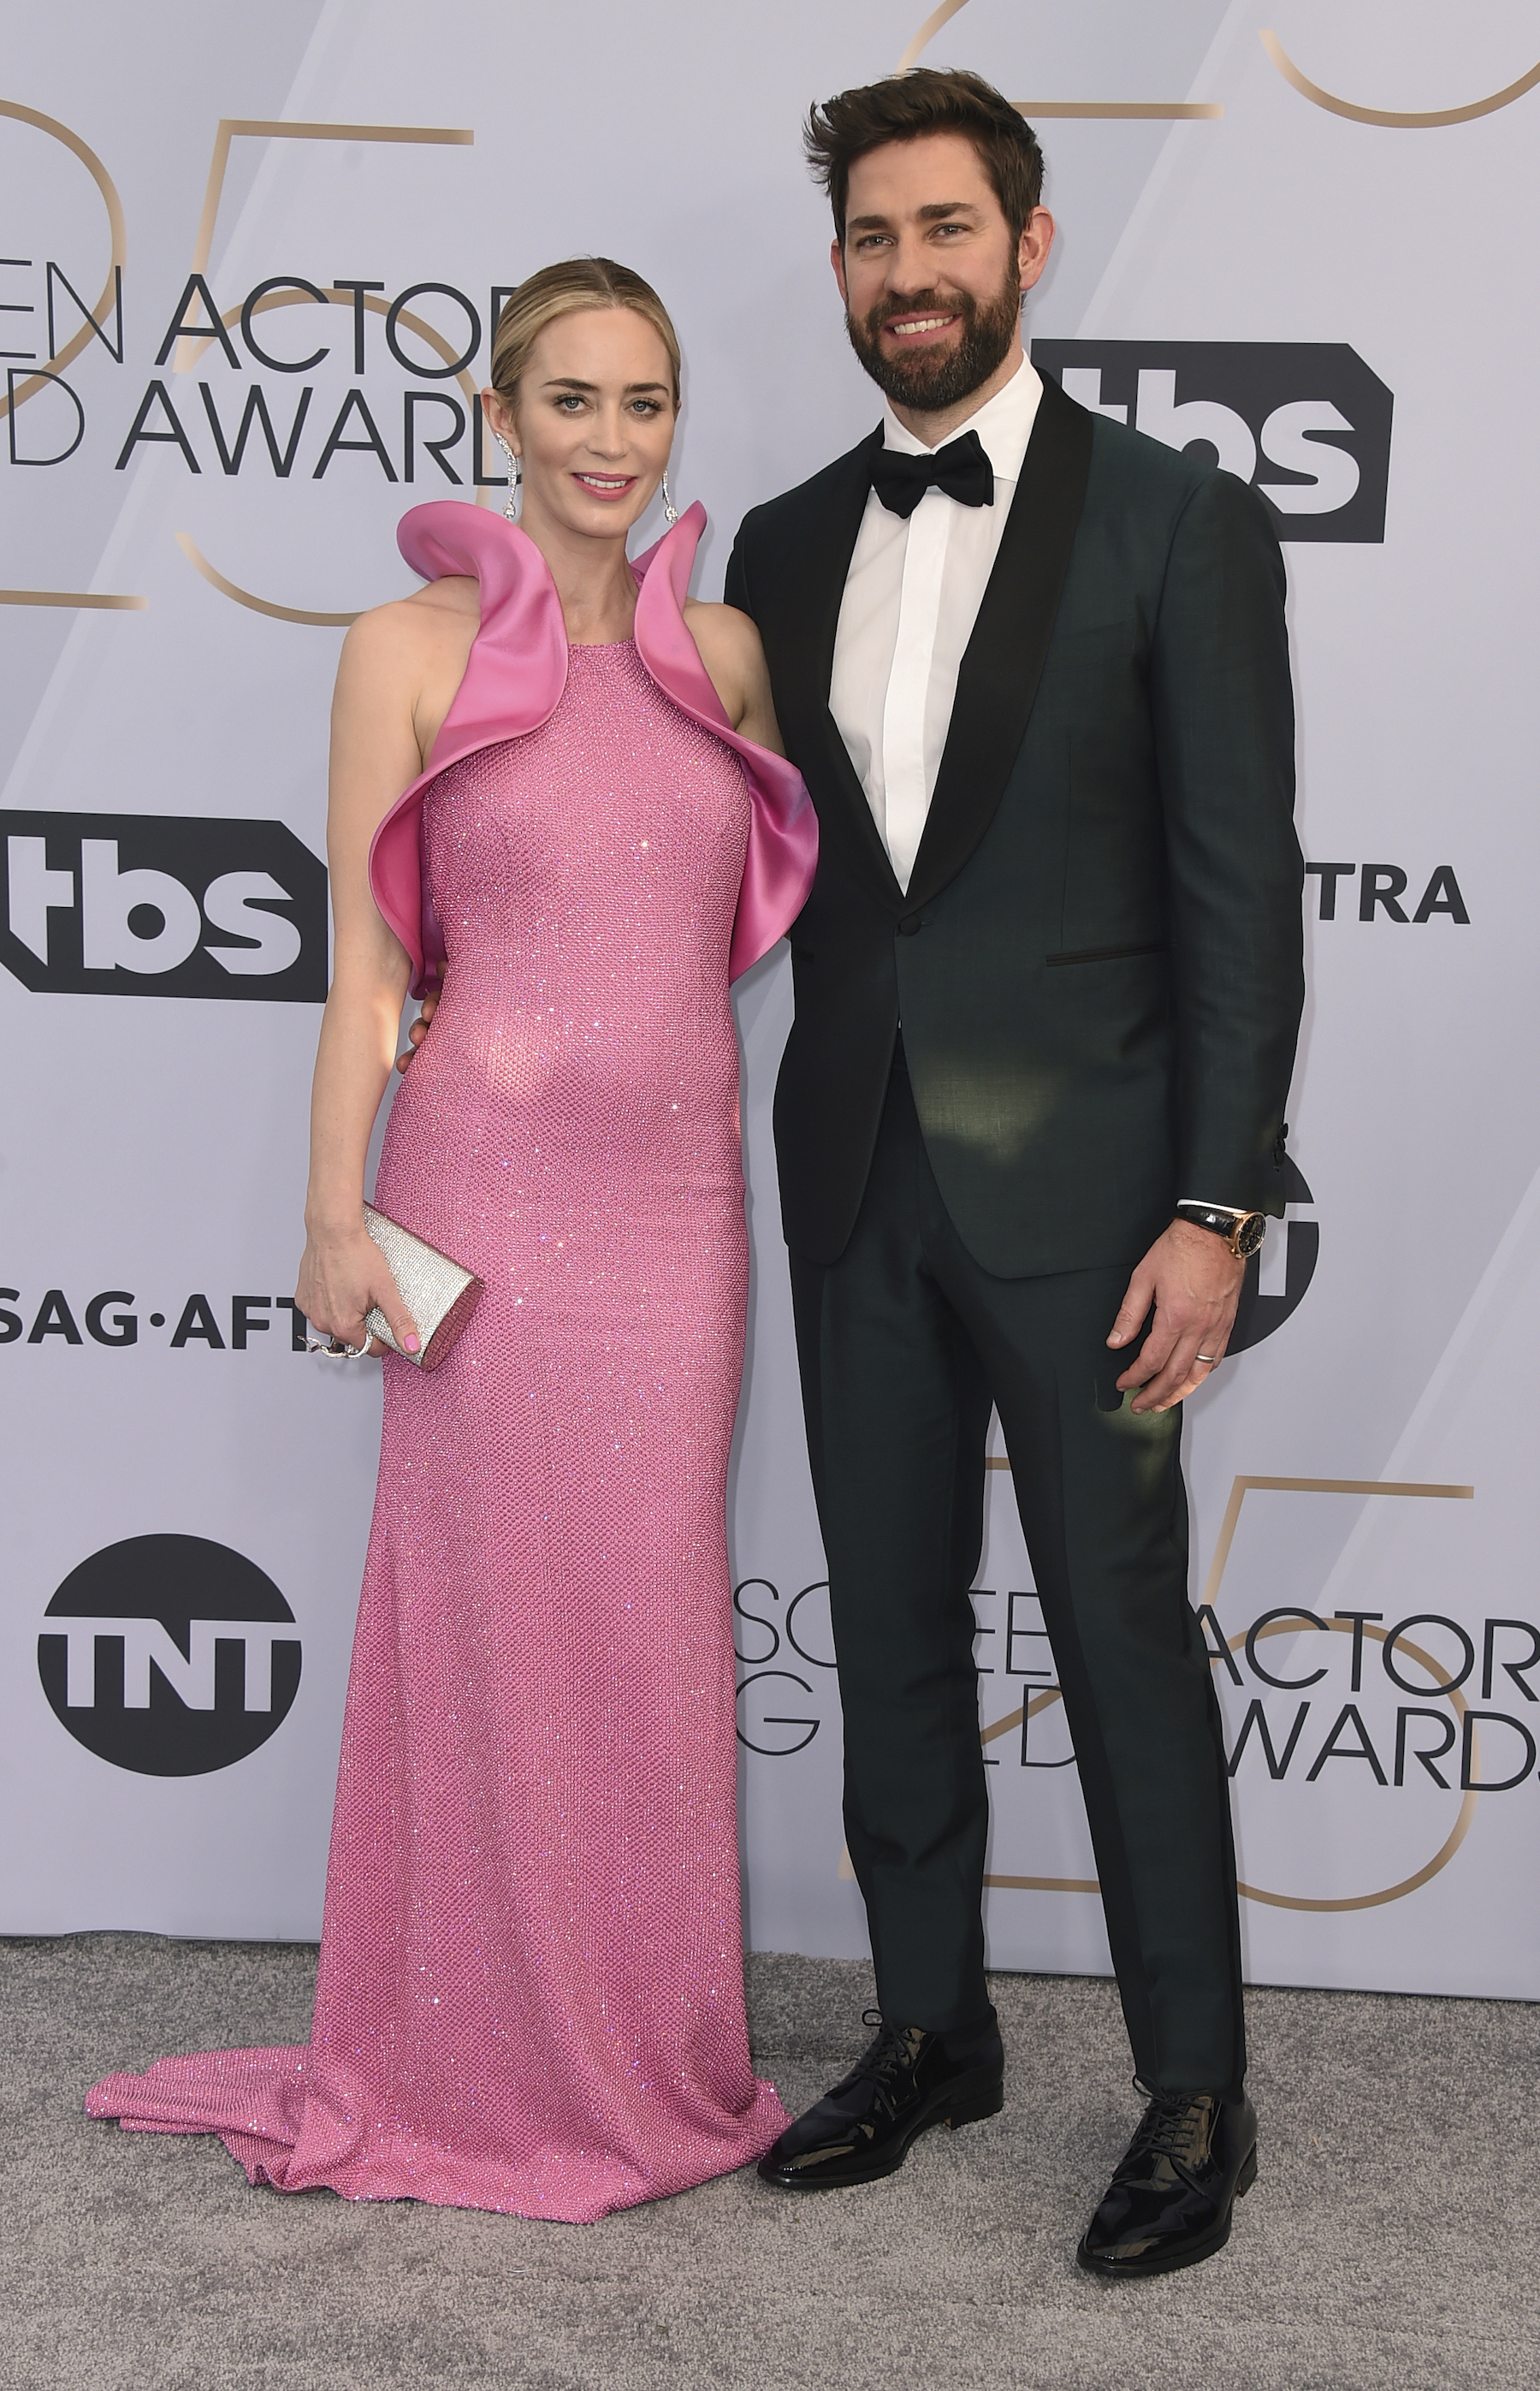 "<div class=""meta image-caption""><div class=""origin-logo origin-image ap""><span>AP</span></div><span class=""caption-text"">Emily Blunt, left, and John Krasinski arrive at the 25th annual Screen Actors Guild Awards at the Shrine Auditorium & Expo Hall on Sunday, Jan. 27, 2019, in Los Angeles. (Jordan Strauss/Invision/AP)</span></div>"